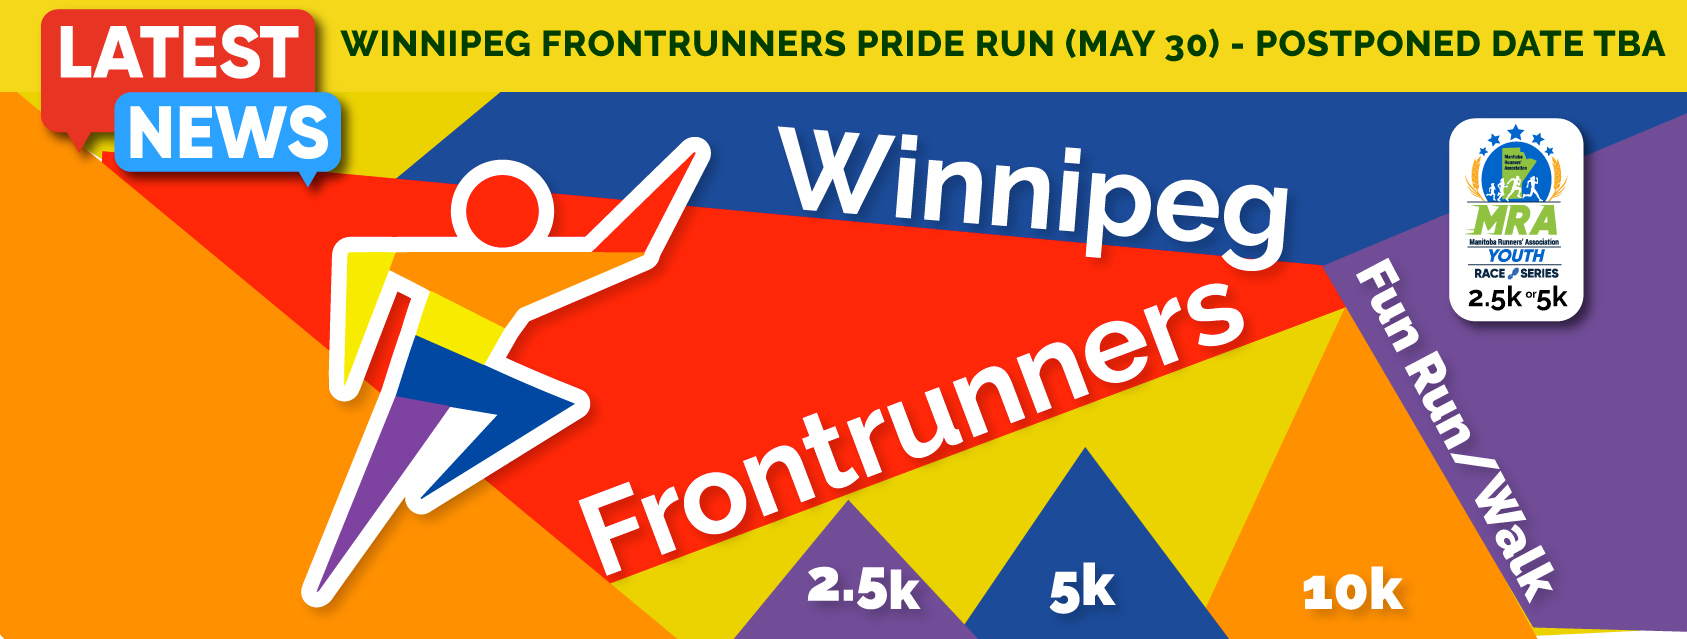 Winnipeg Frontrunners Pride Run  **VIRTUAL EVENT SEPTEMBER 7-11**